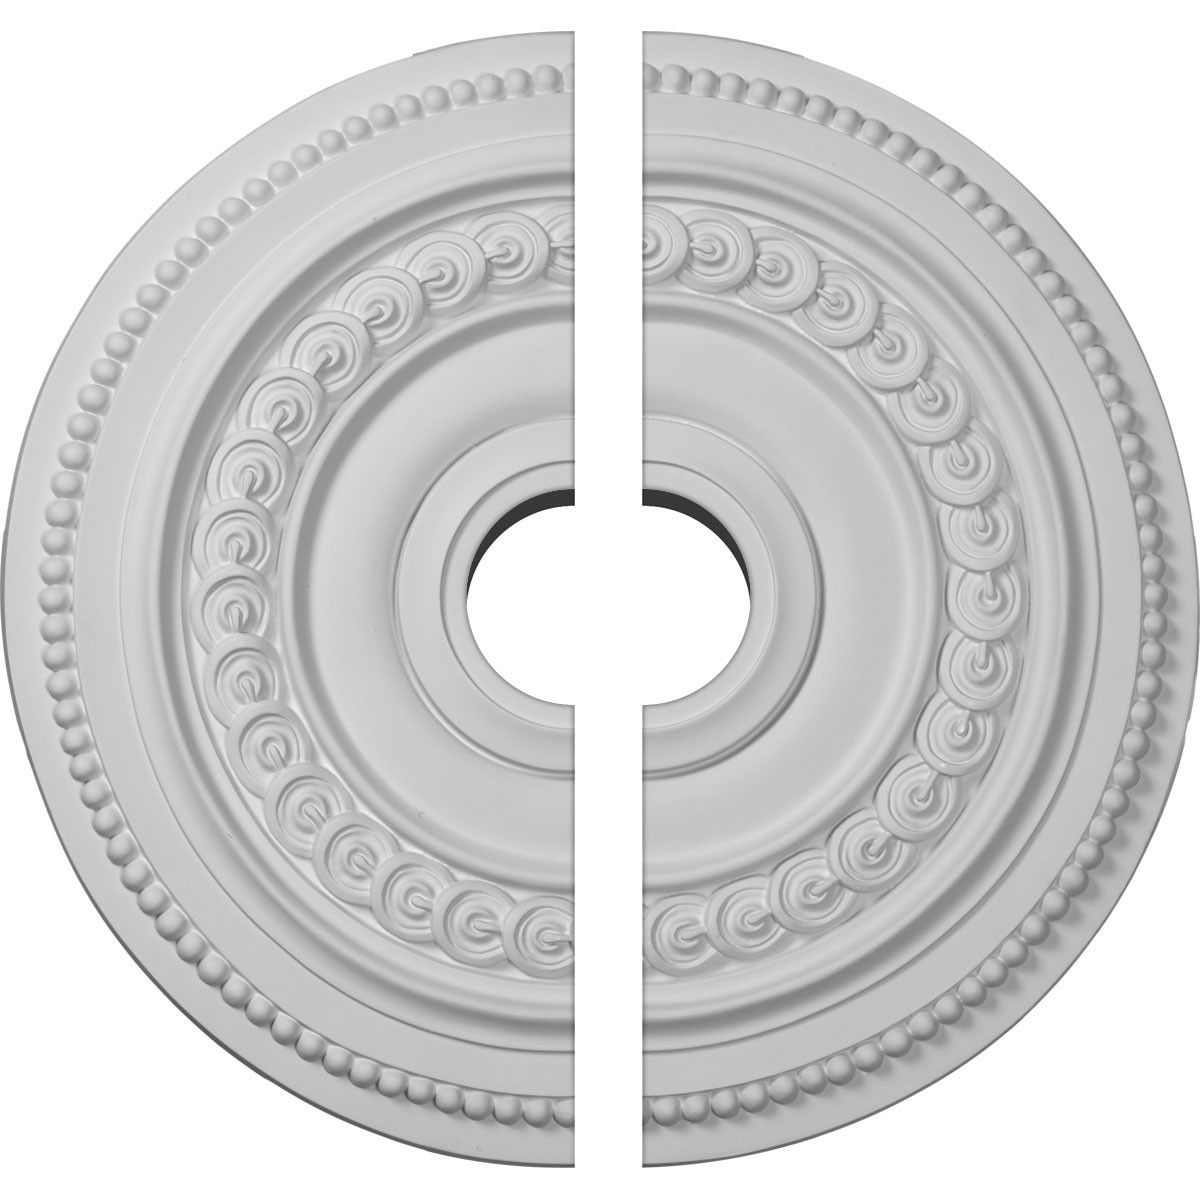 "EM-CM18OL2-03500 - 18""OD x 3 1/2""ID x 1 1/4""P Oldham Ceiling Medallion, Two Piece (Fits Canopies up to 8 5/8"")"